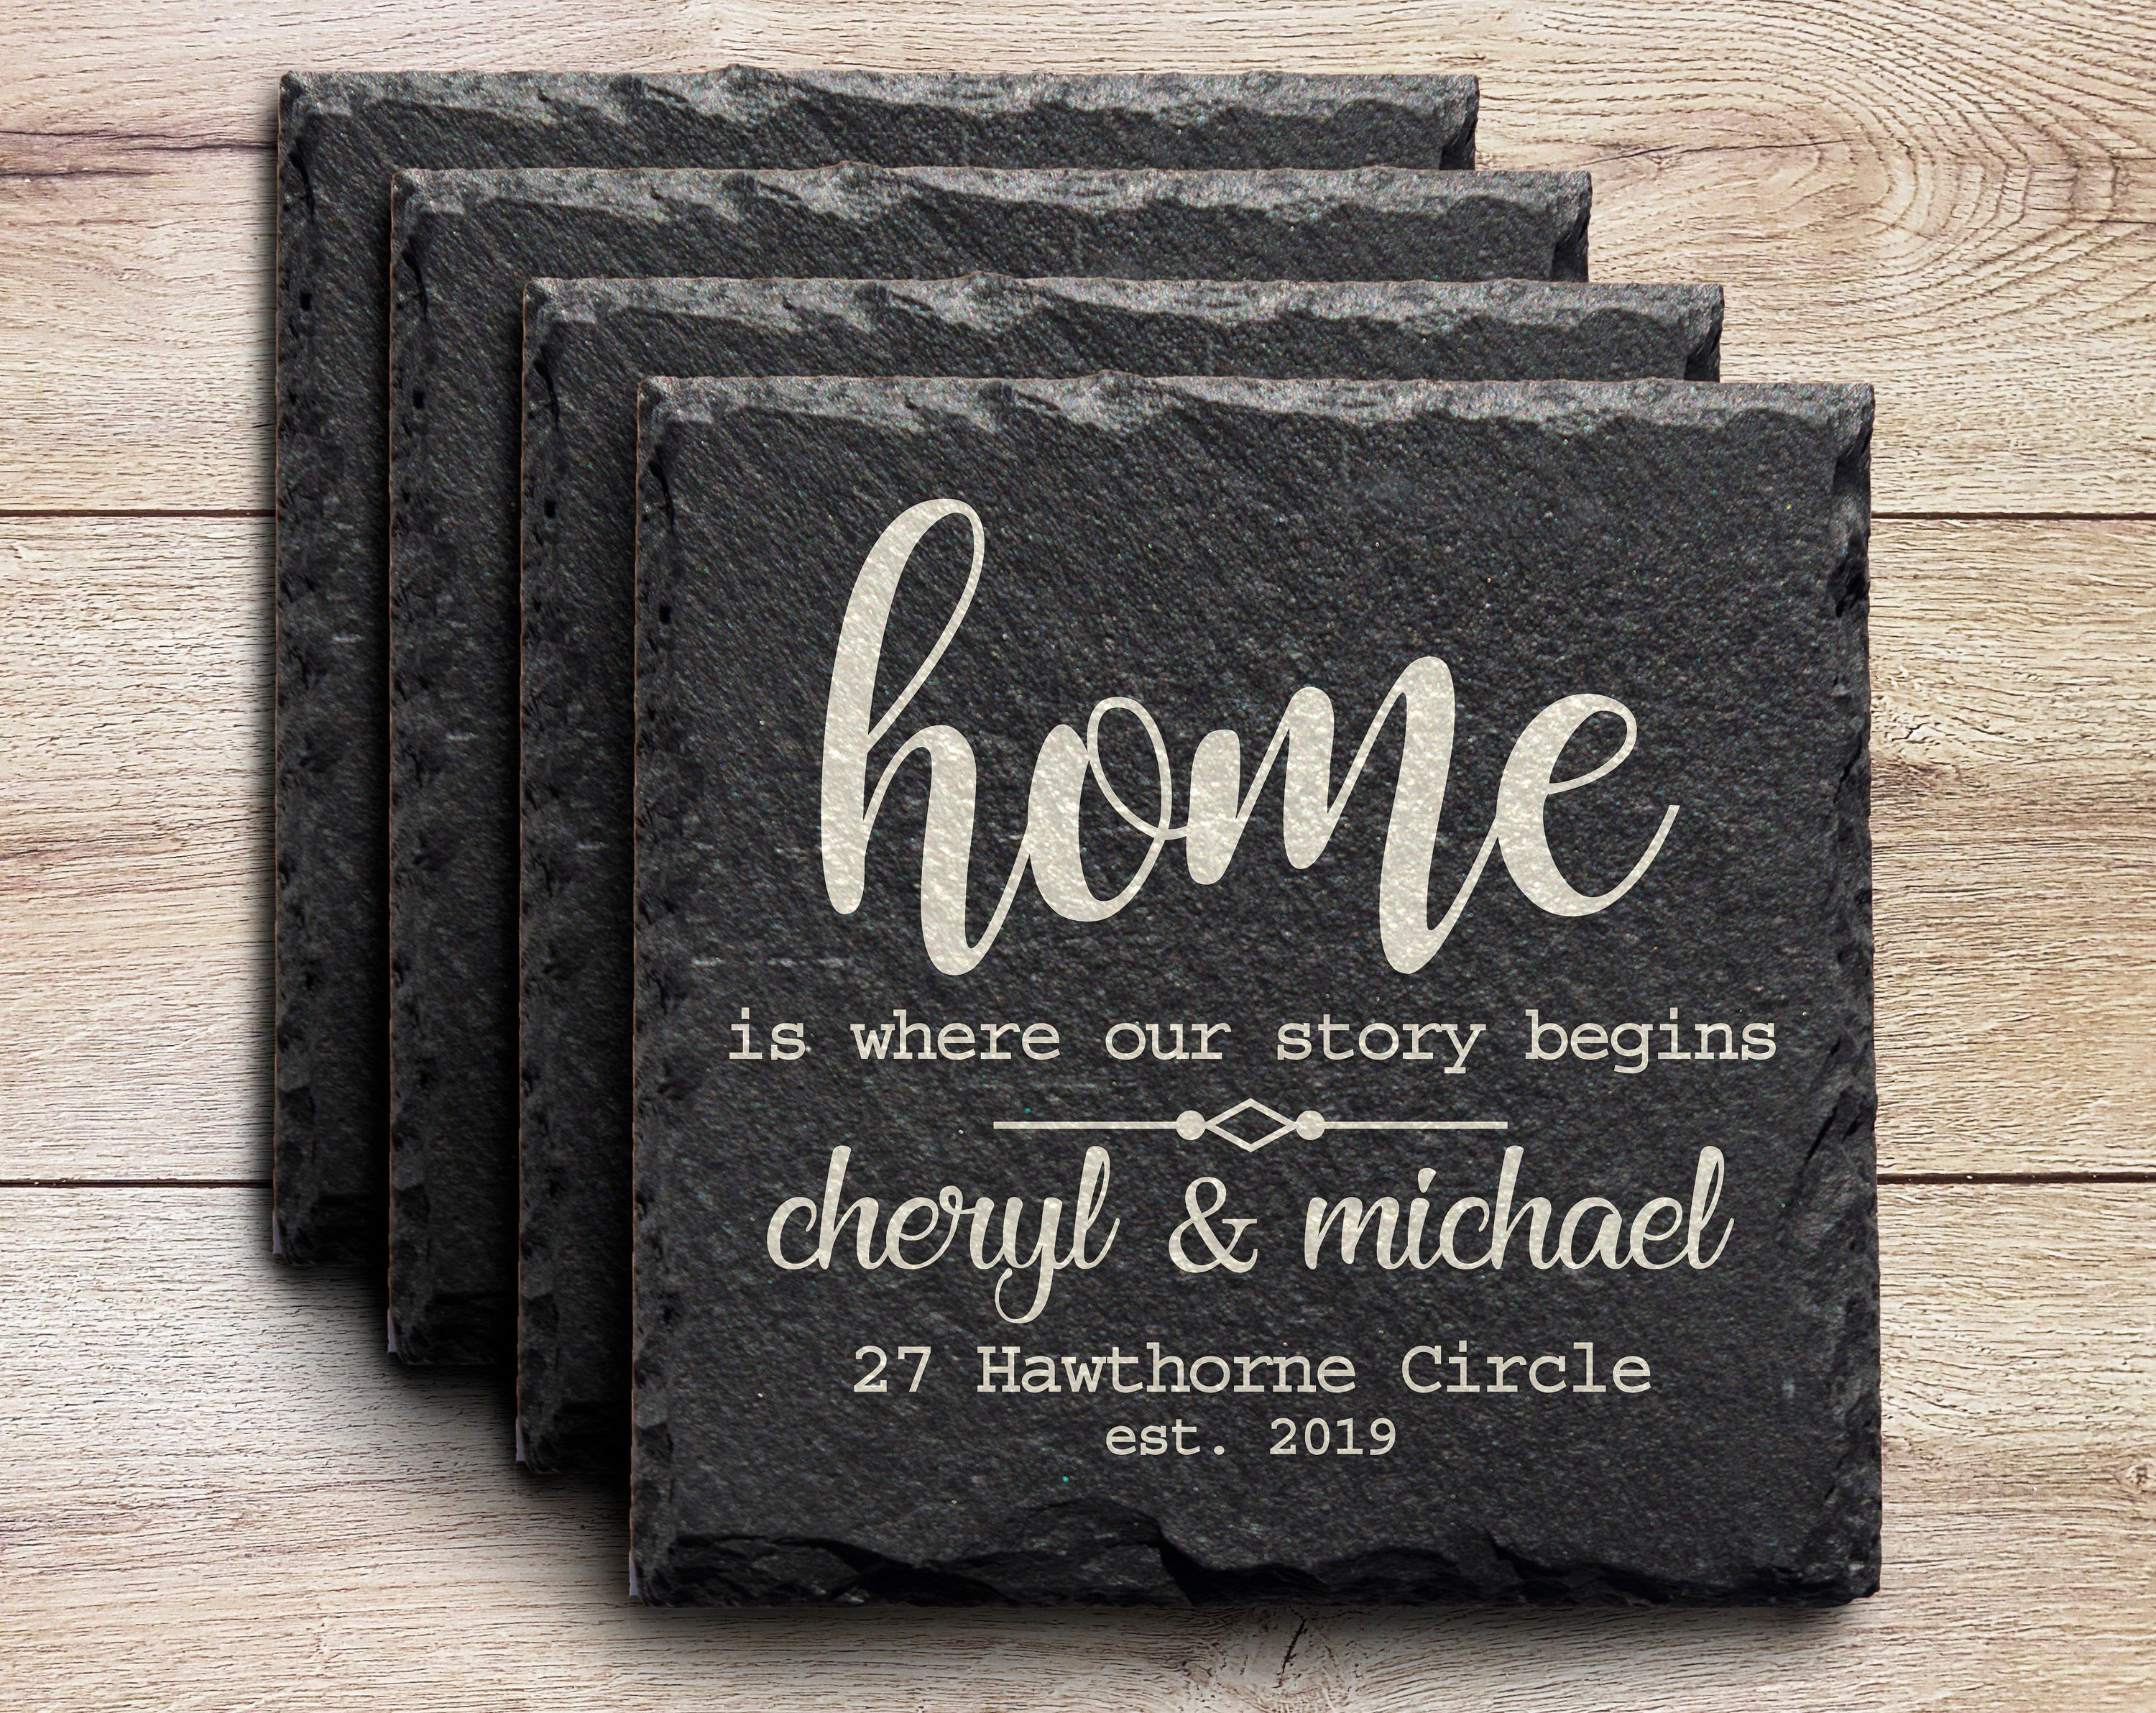 personalised wedding coaster slate gift idea novelty Engagement rustic engraved